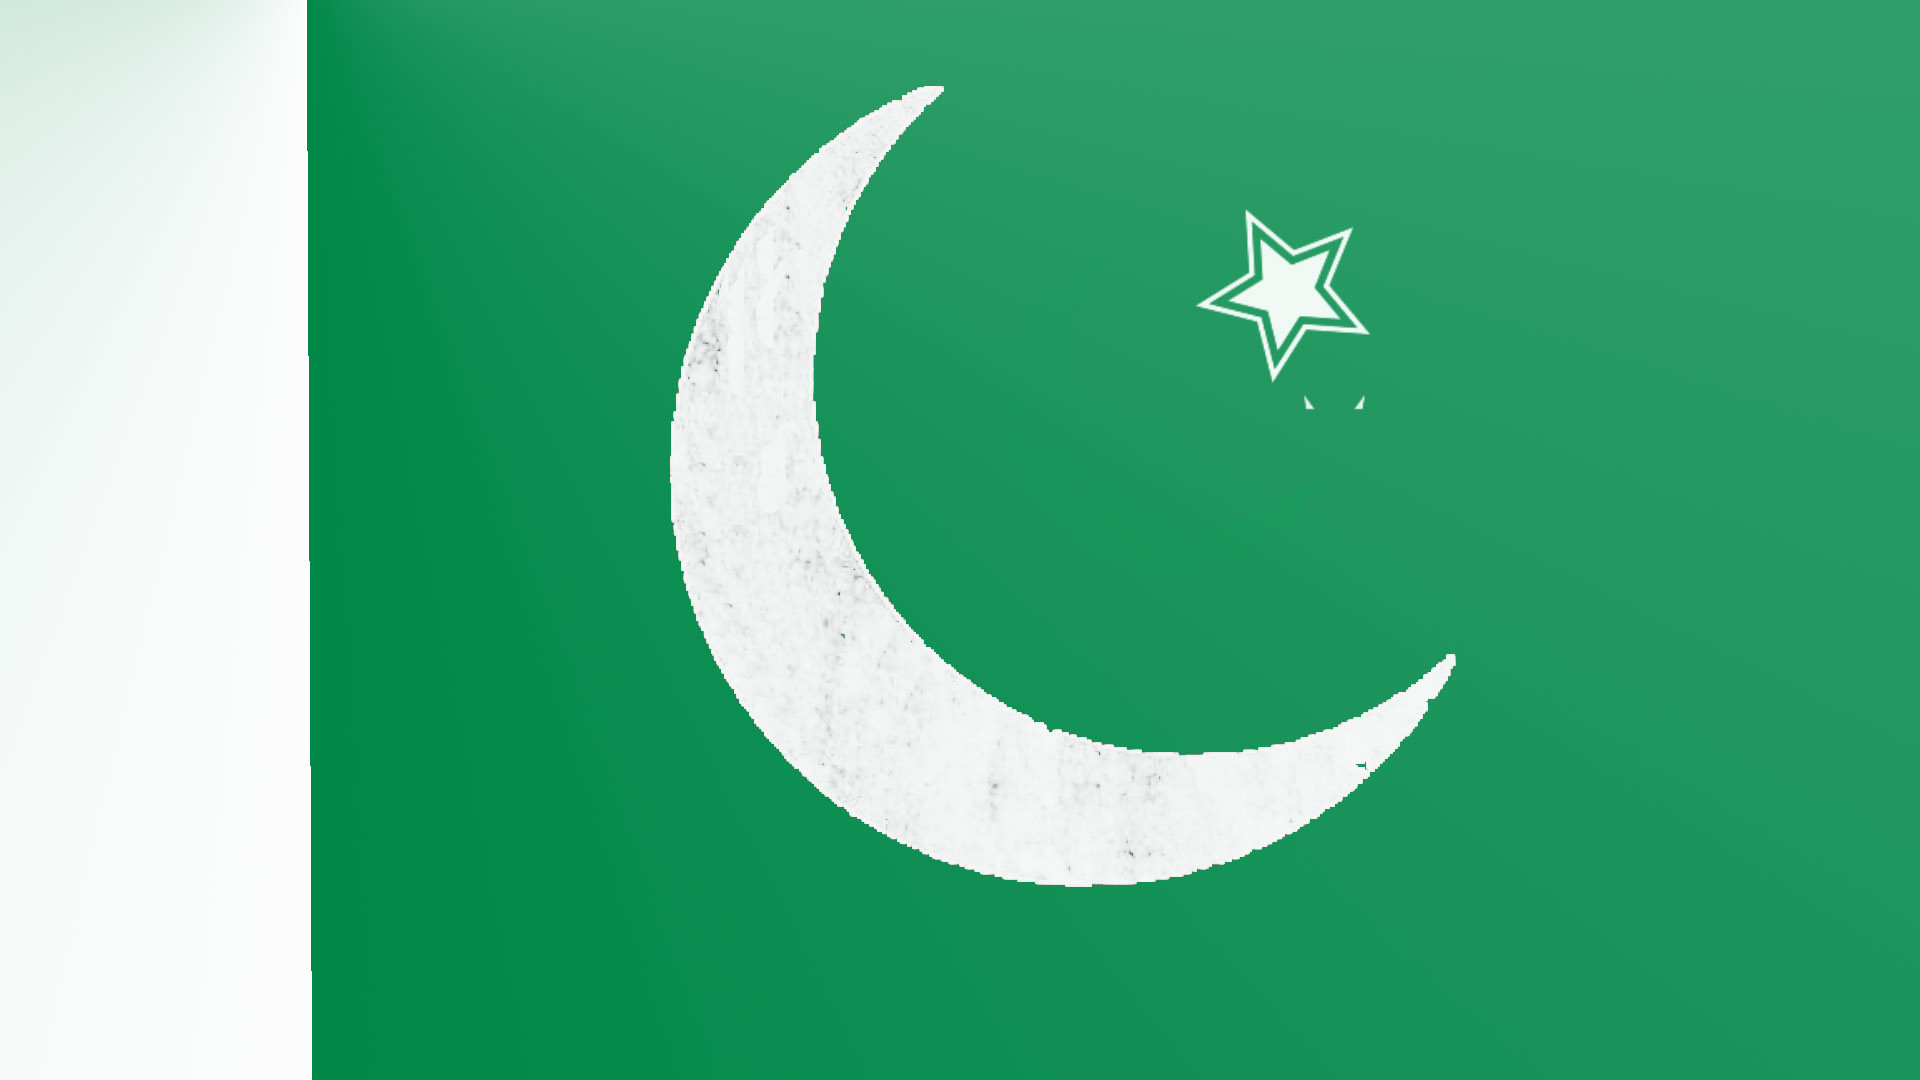 1920x1080 ... Pakistan-flag-images-wallpapers-2017-card